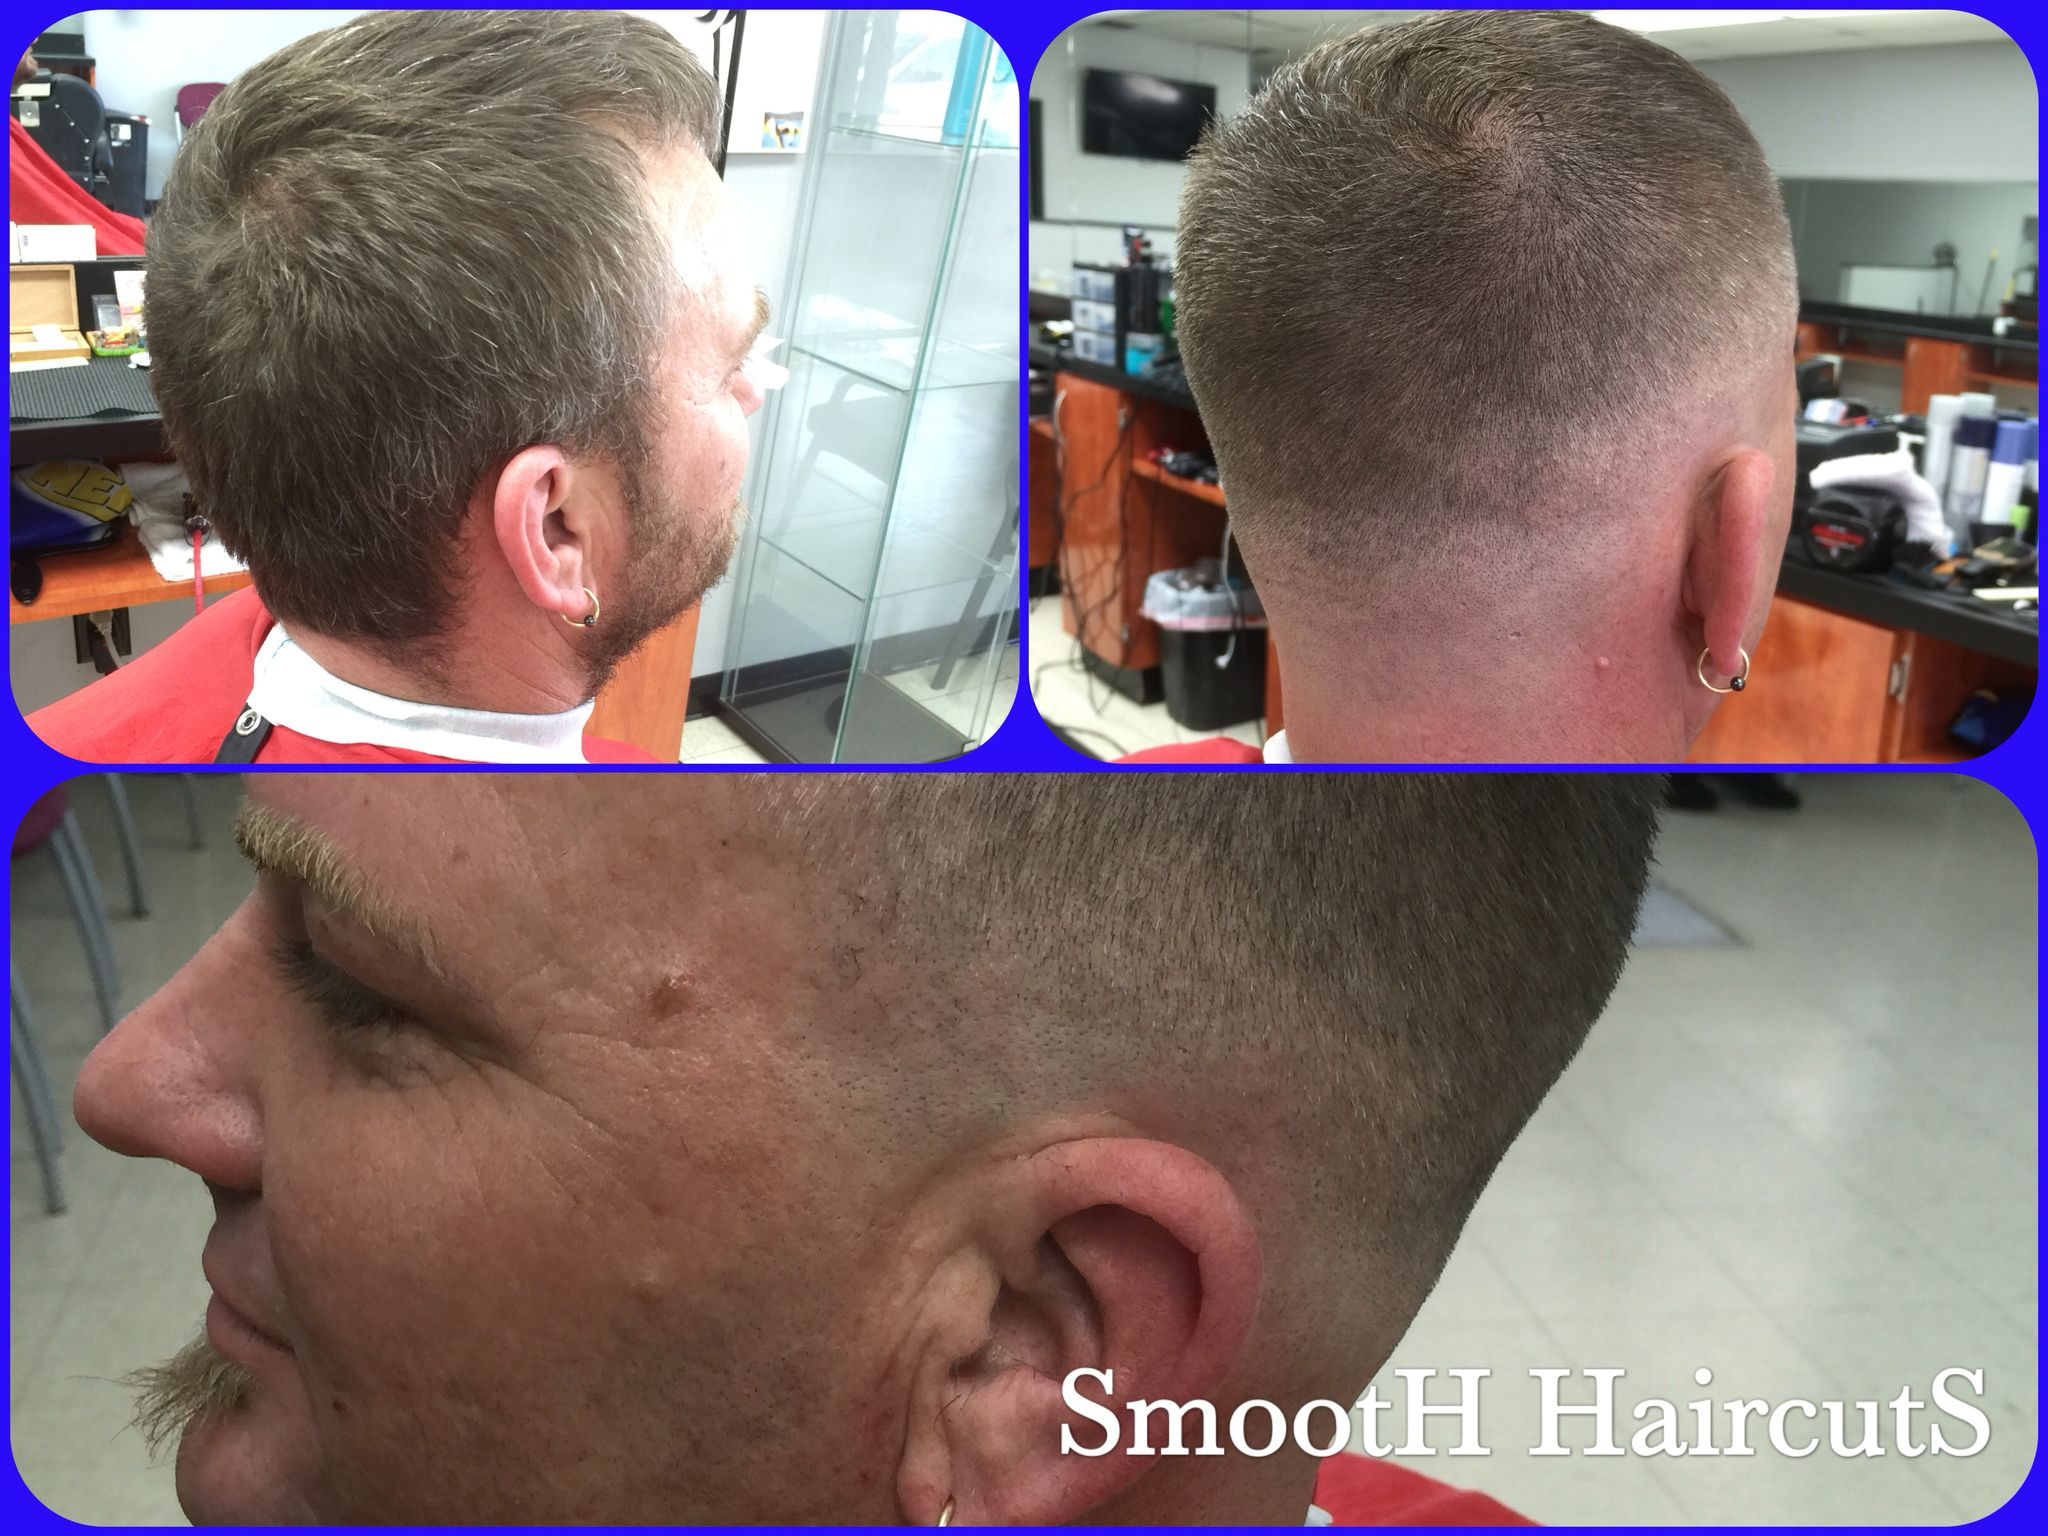 Low fade smooth haircuts pinterest low fade